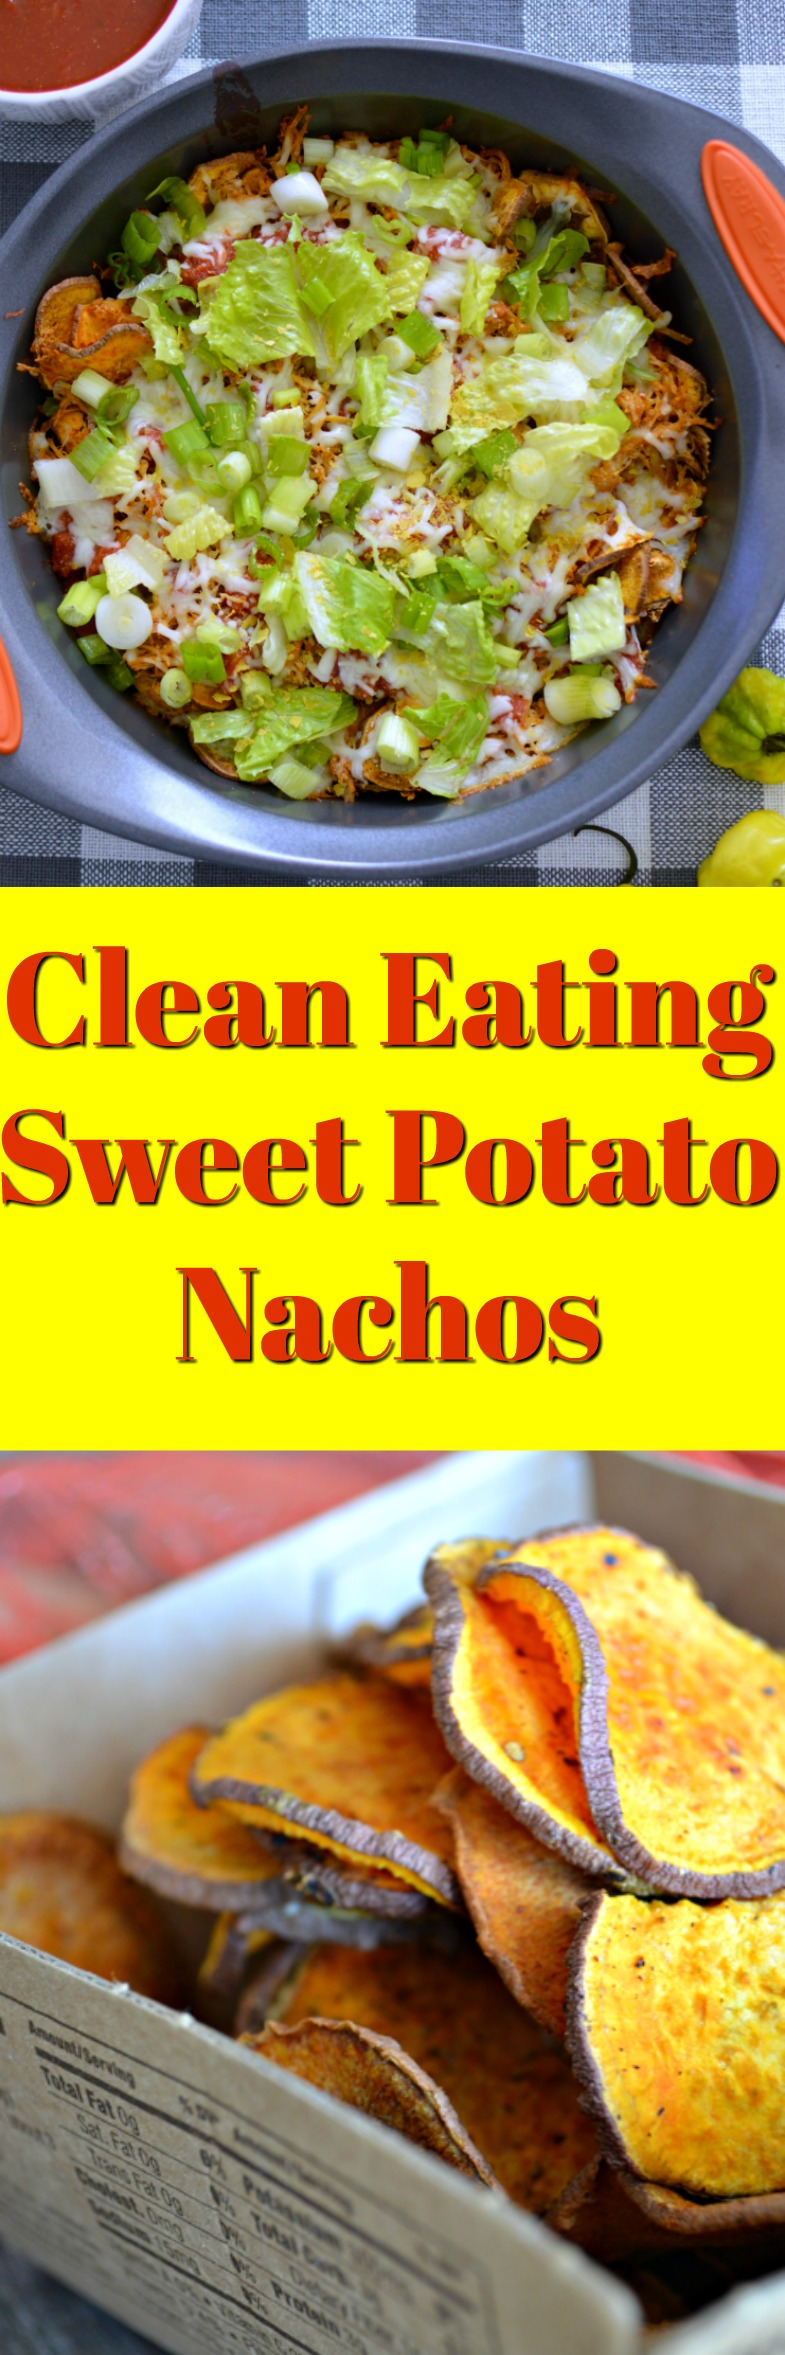 You will LOVE these <strong>Clean Eating Sweet Potato Nachos</strong> that are the perfect appetizer if you want lean clean food. Loaded with fiber and protein, this is an easy way to swap out fatty tortilla chips.